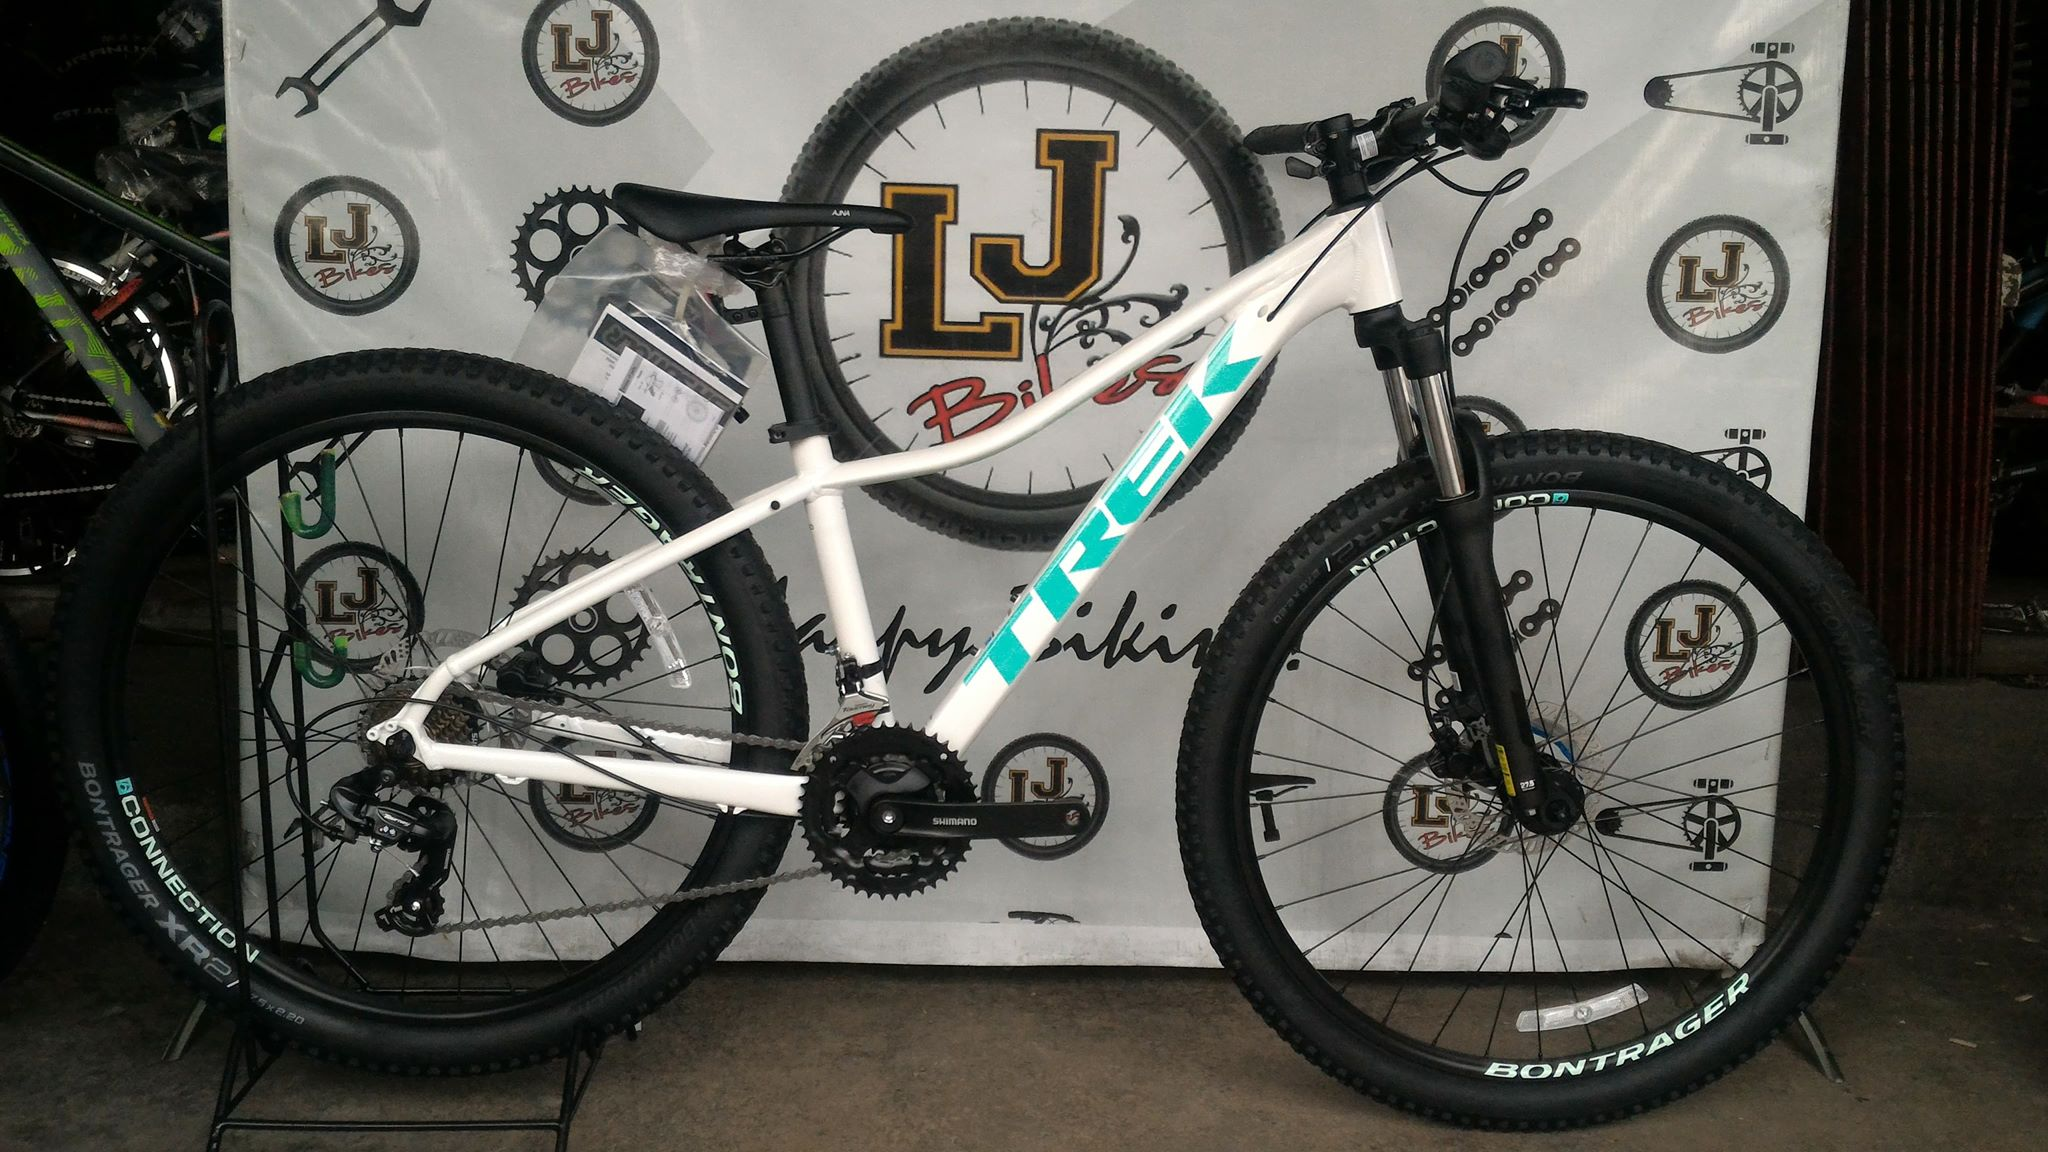 Trek Bikes Archives - Lj Bikes